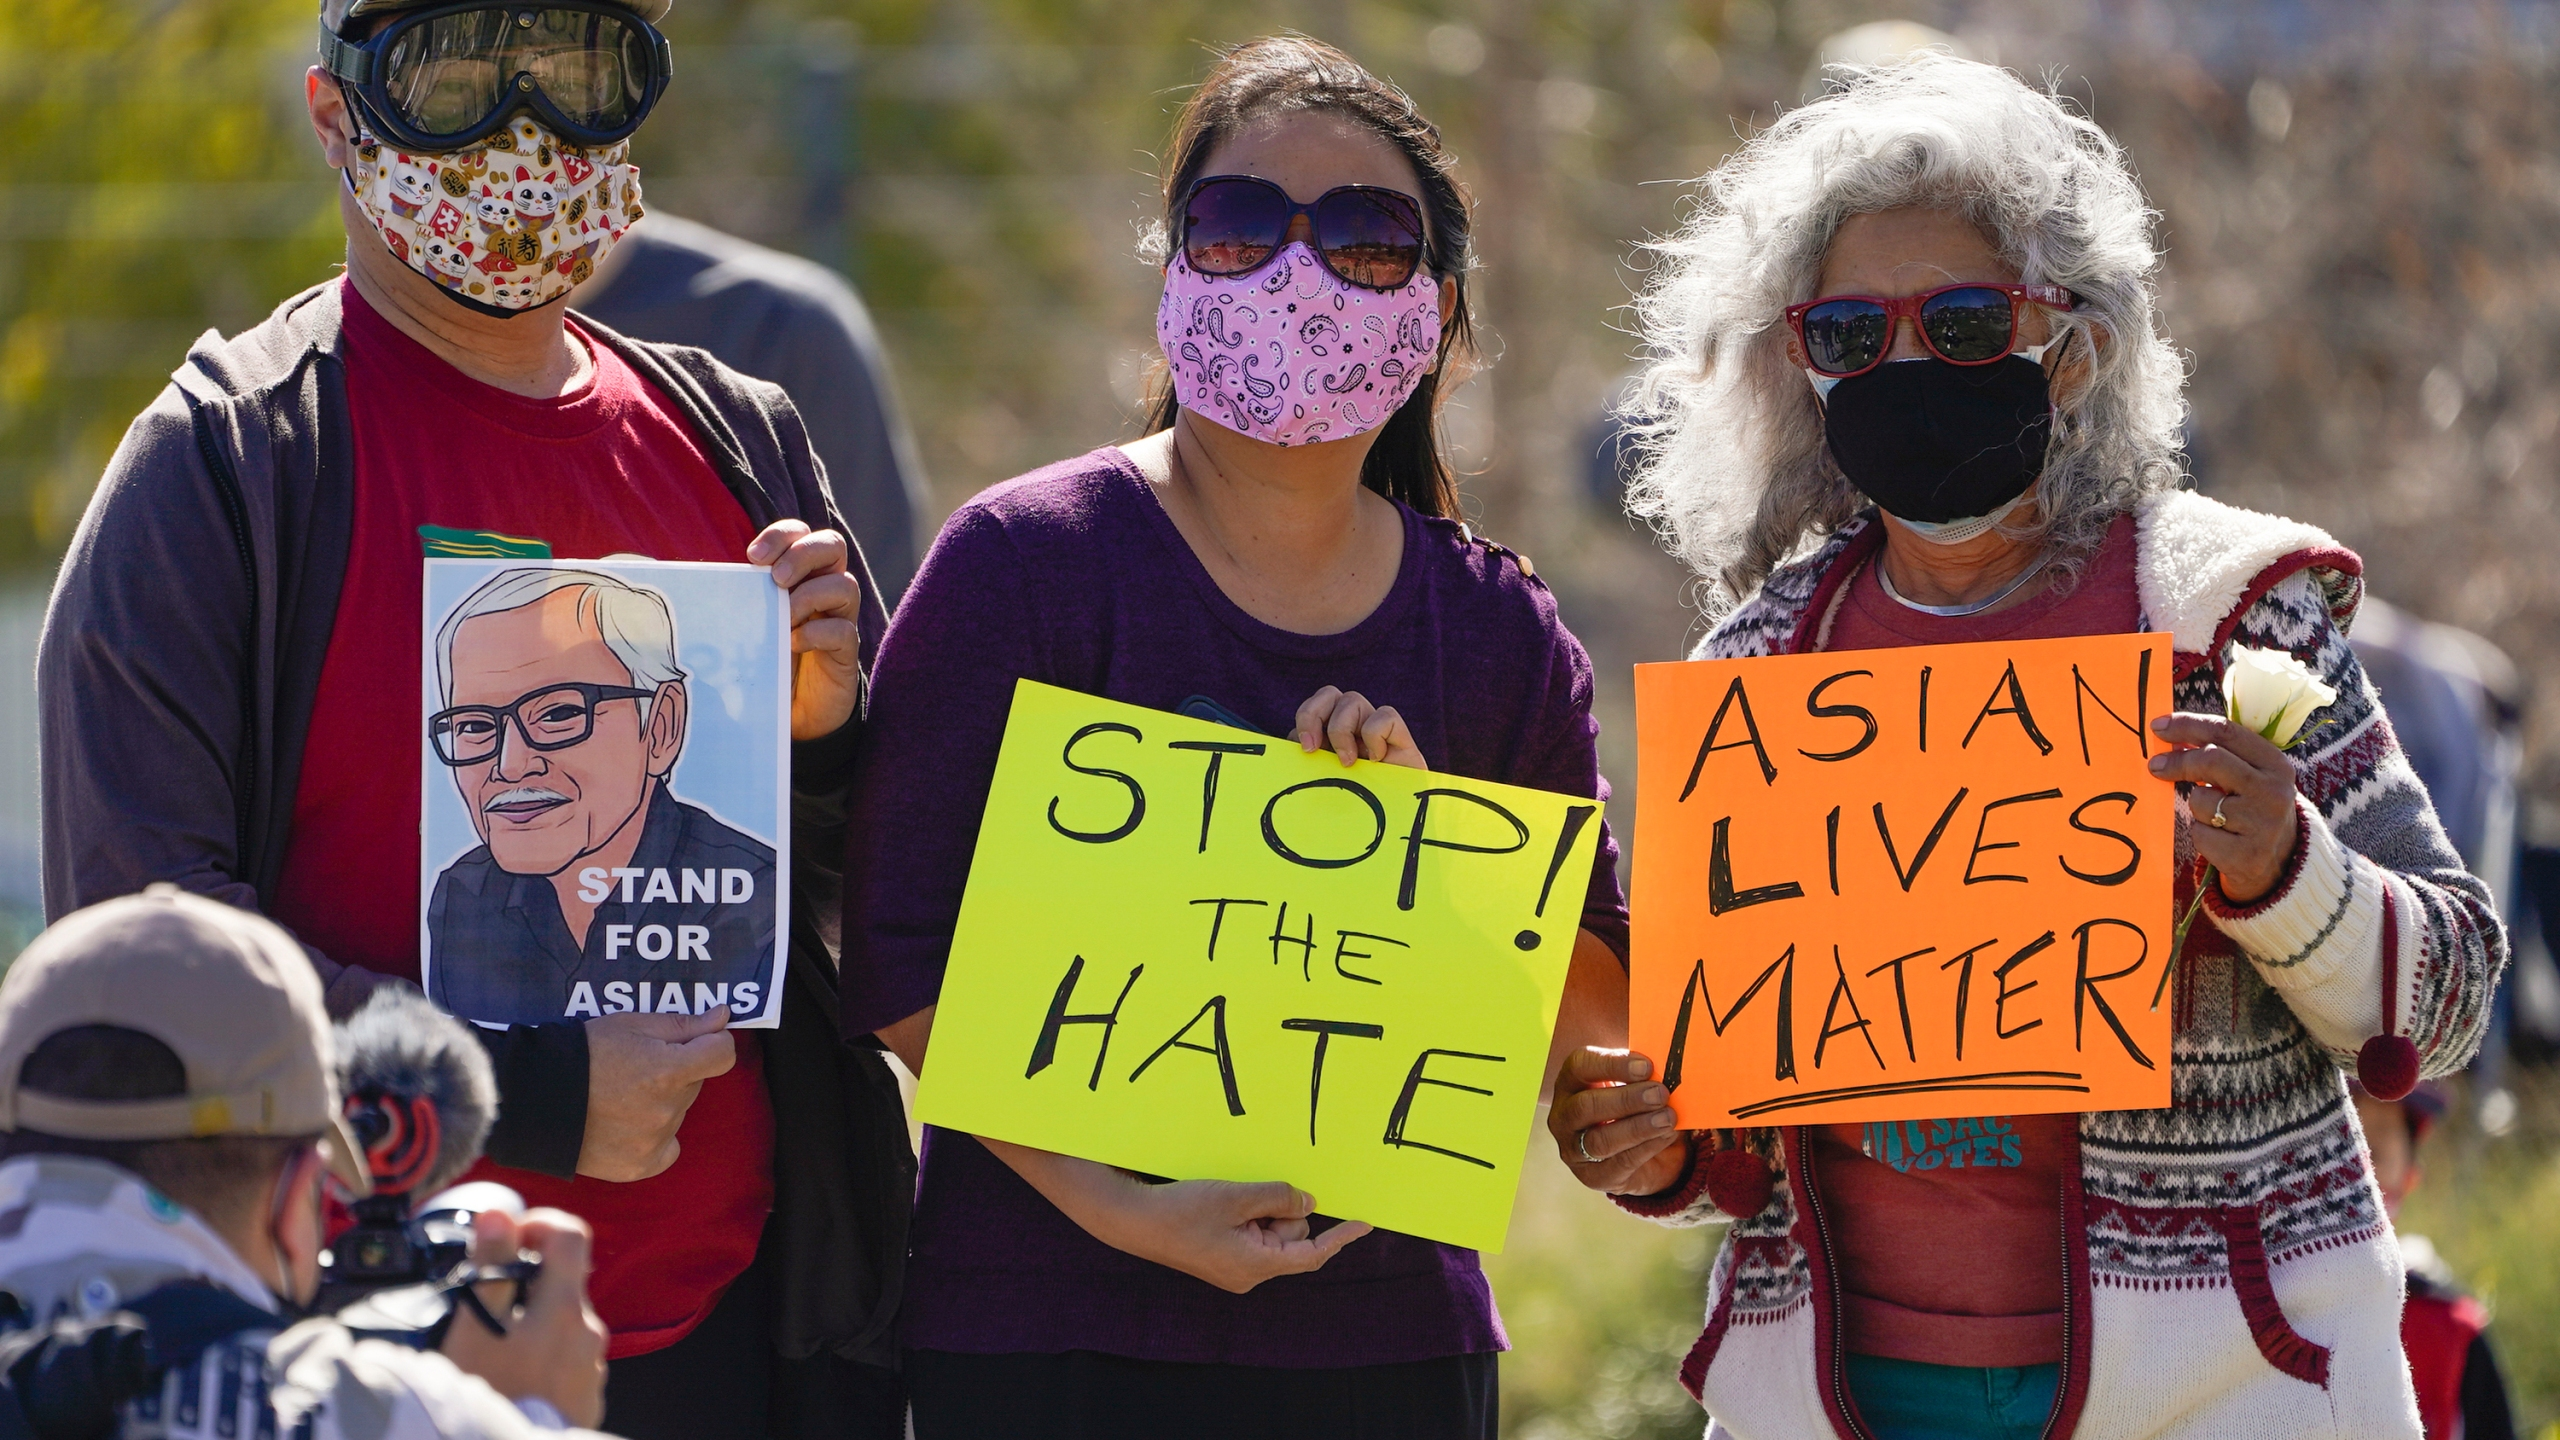 A man holds a portrait of late Vichar Ratanapakdee, left, a 84-year-old immigrant from Thailand, who was violently shoved to the ground in a deadly attack in San Francisco, during a community rally to raise awareness of anti-Asian violence and racist attitudes, in response to the string of violent racist attacks against Asians during the pandemic, held at Los Angeles Historic Park near the Chinatown district in Los Angeles on Feb. 20, 2021. (Damian Dovarganes / Associated Press)